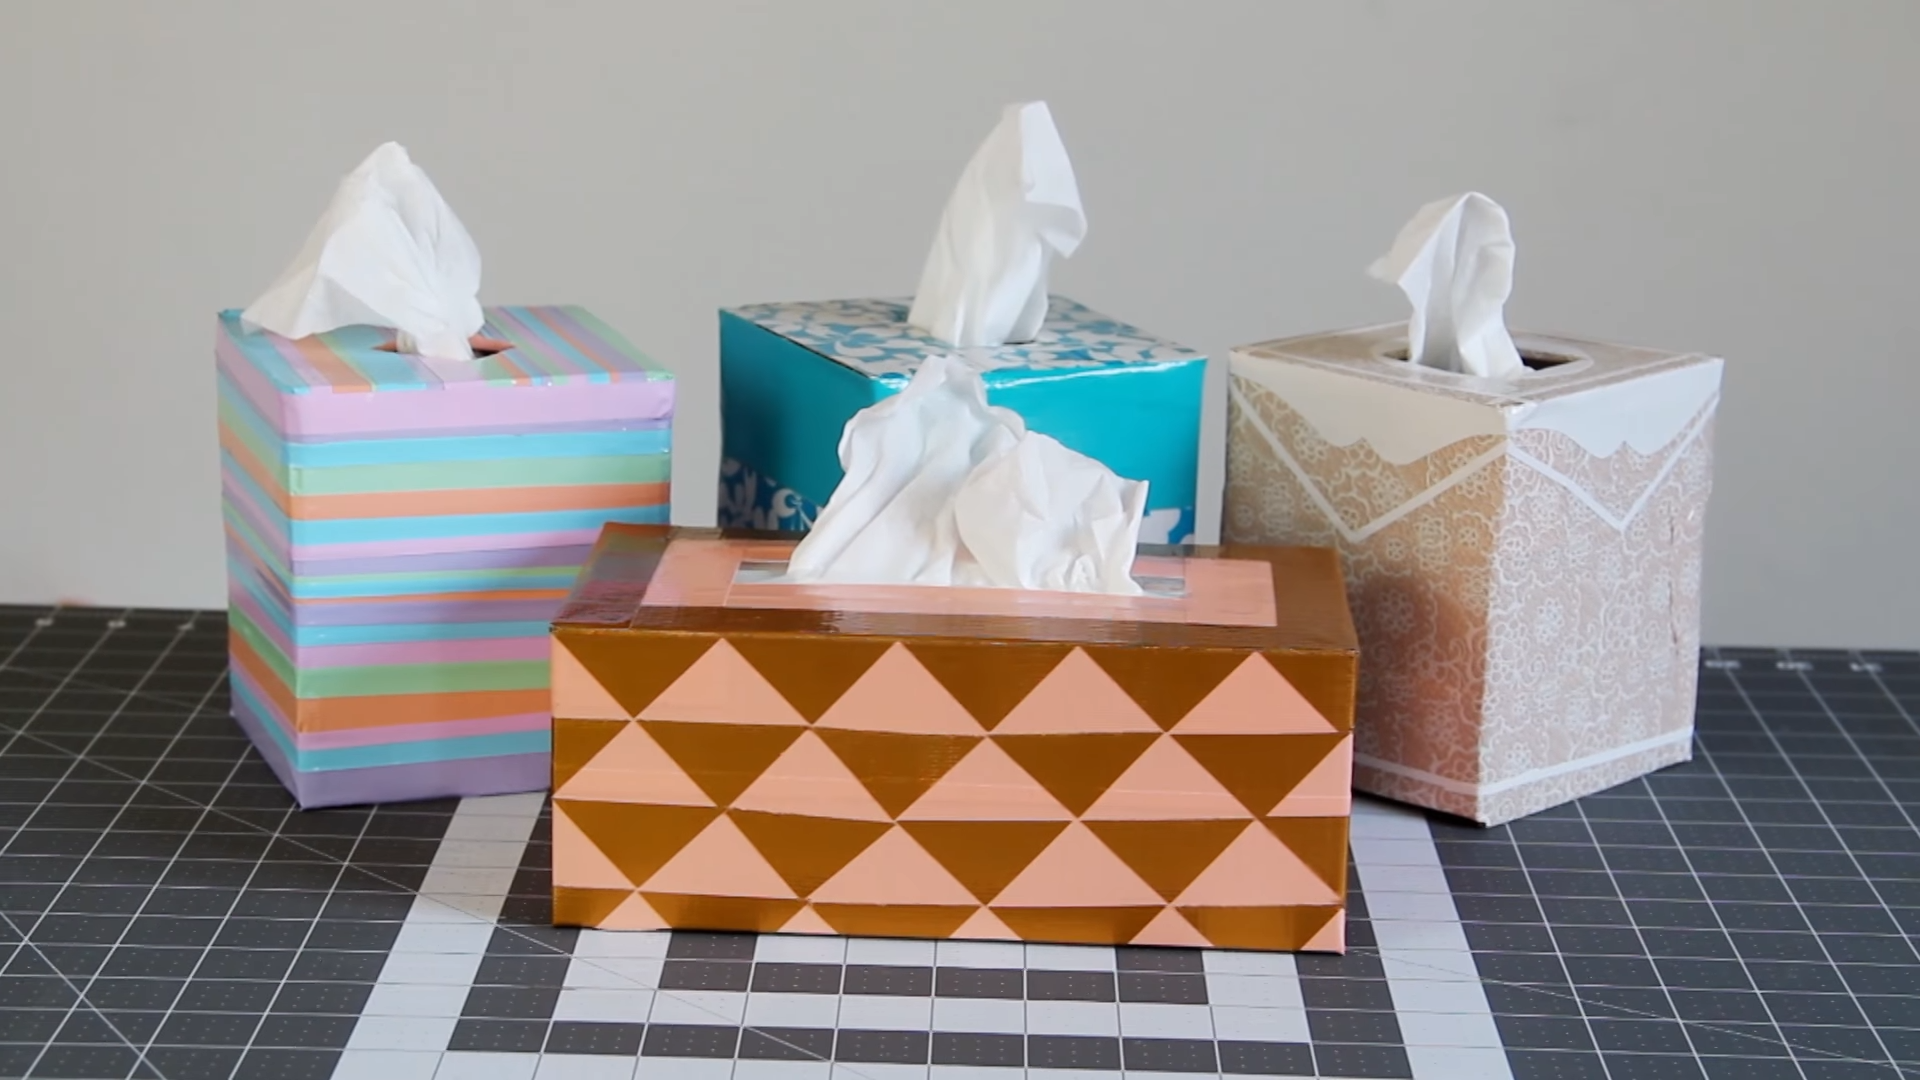 Diy Reusable Duct Tape Tissue Box Covers Cute Colorful Creative Handmade Home Decor Crafts Box Covers Diy Tissue Box Covers Covered Boxes